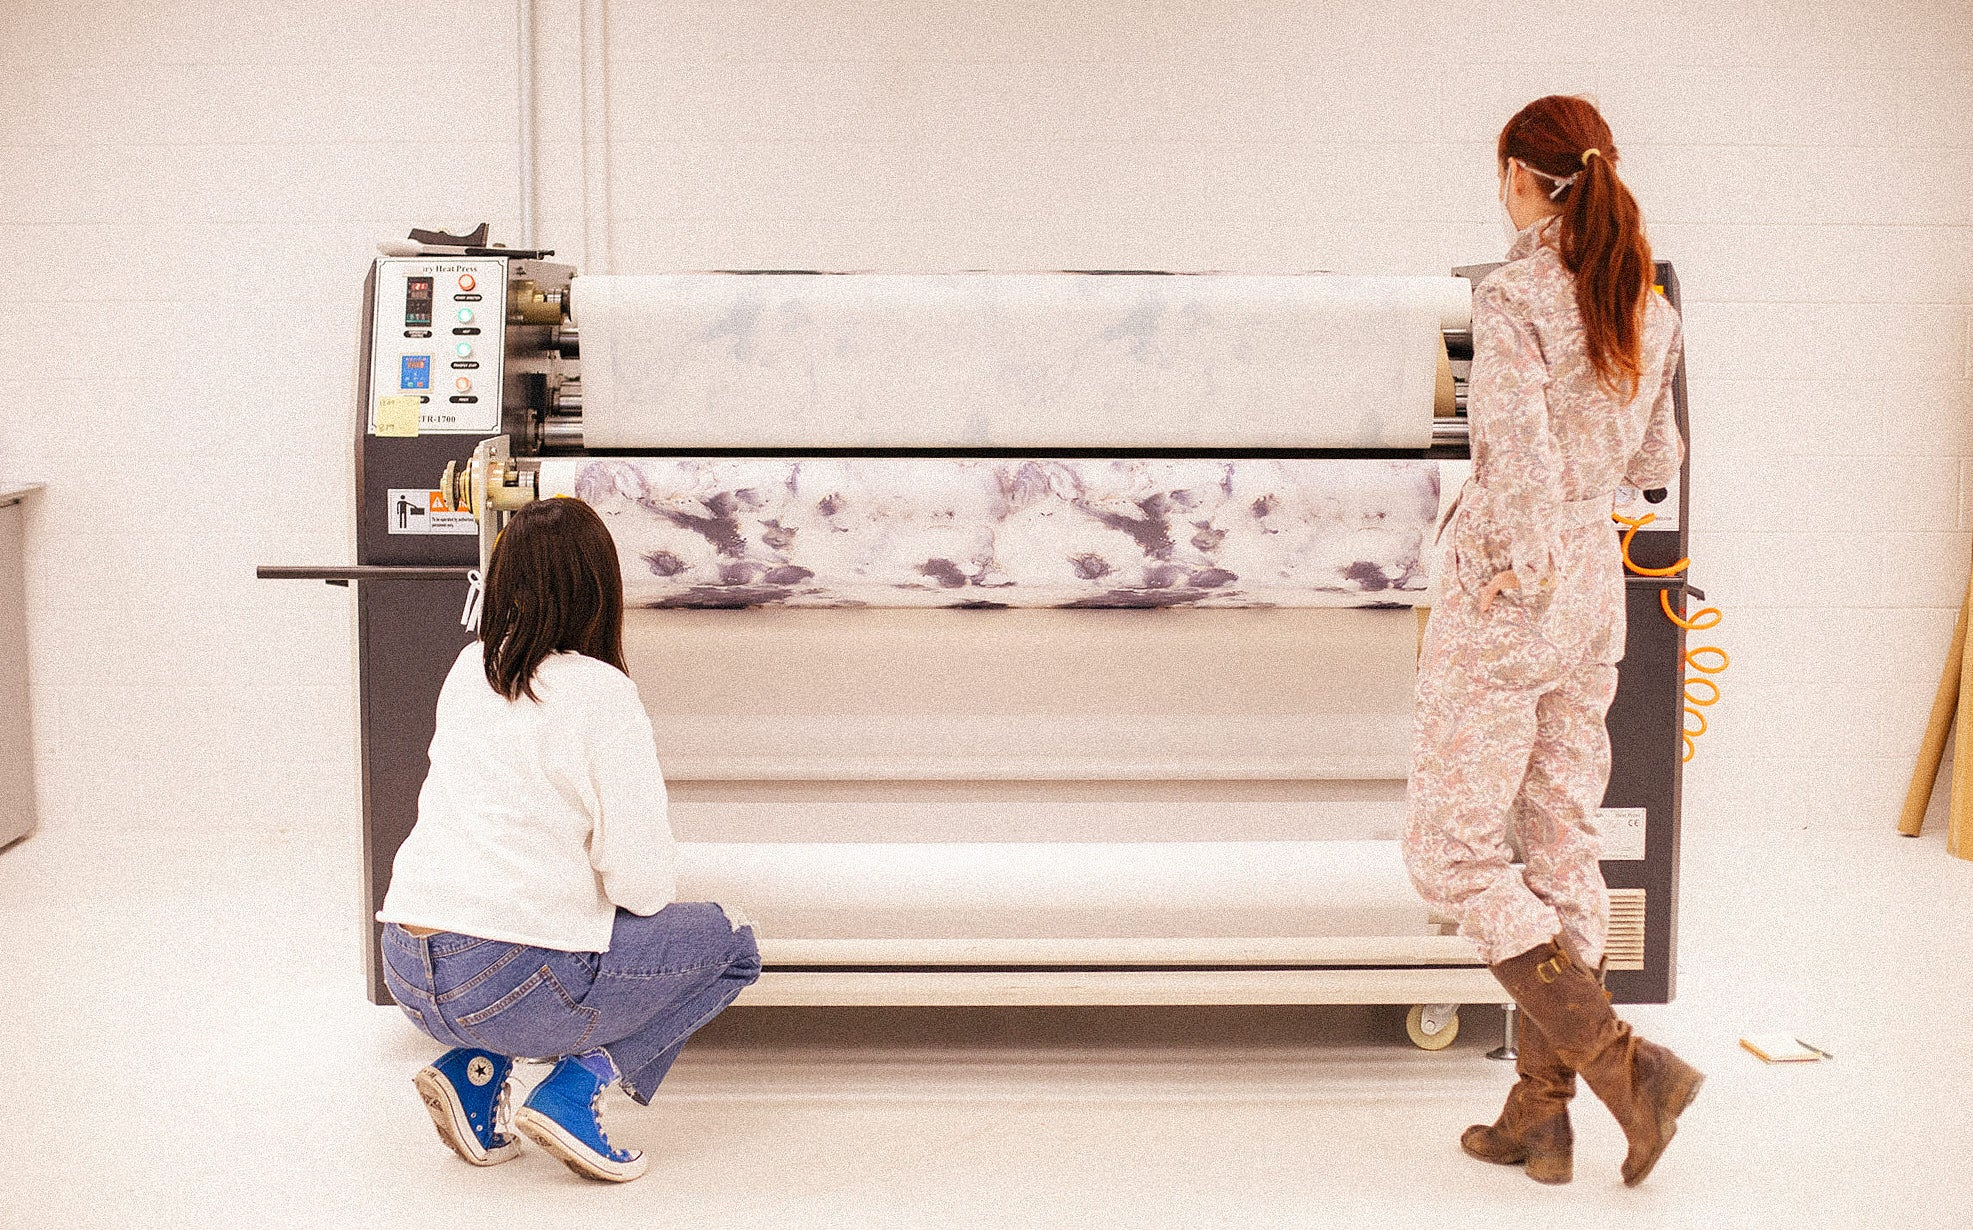 Two women are in front of a large fabric printed. The woman on the left is wearing blue sneakers and kneeling while the woman on the right wears tall boots and stands with her foot kicked back and a hand in her pocket.